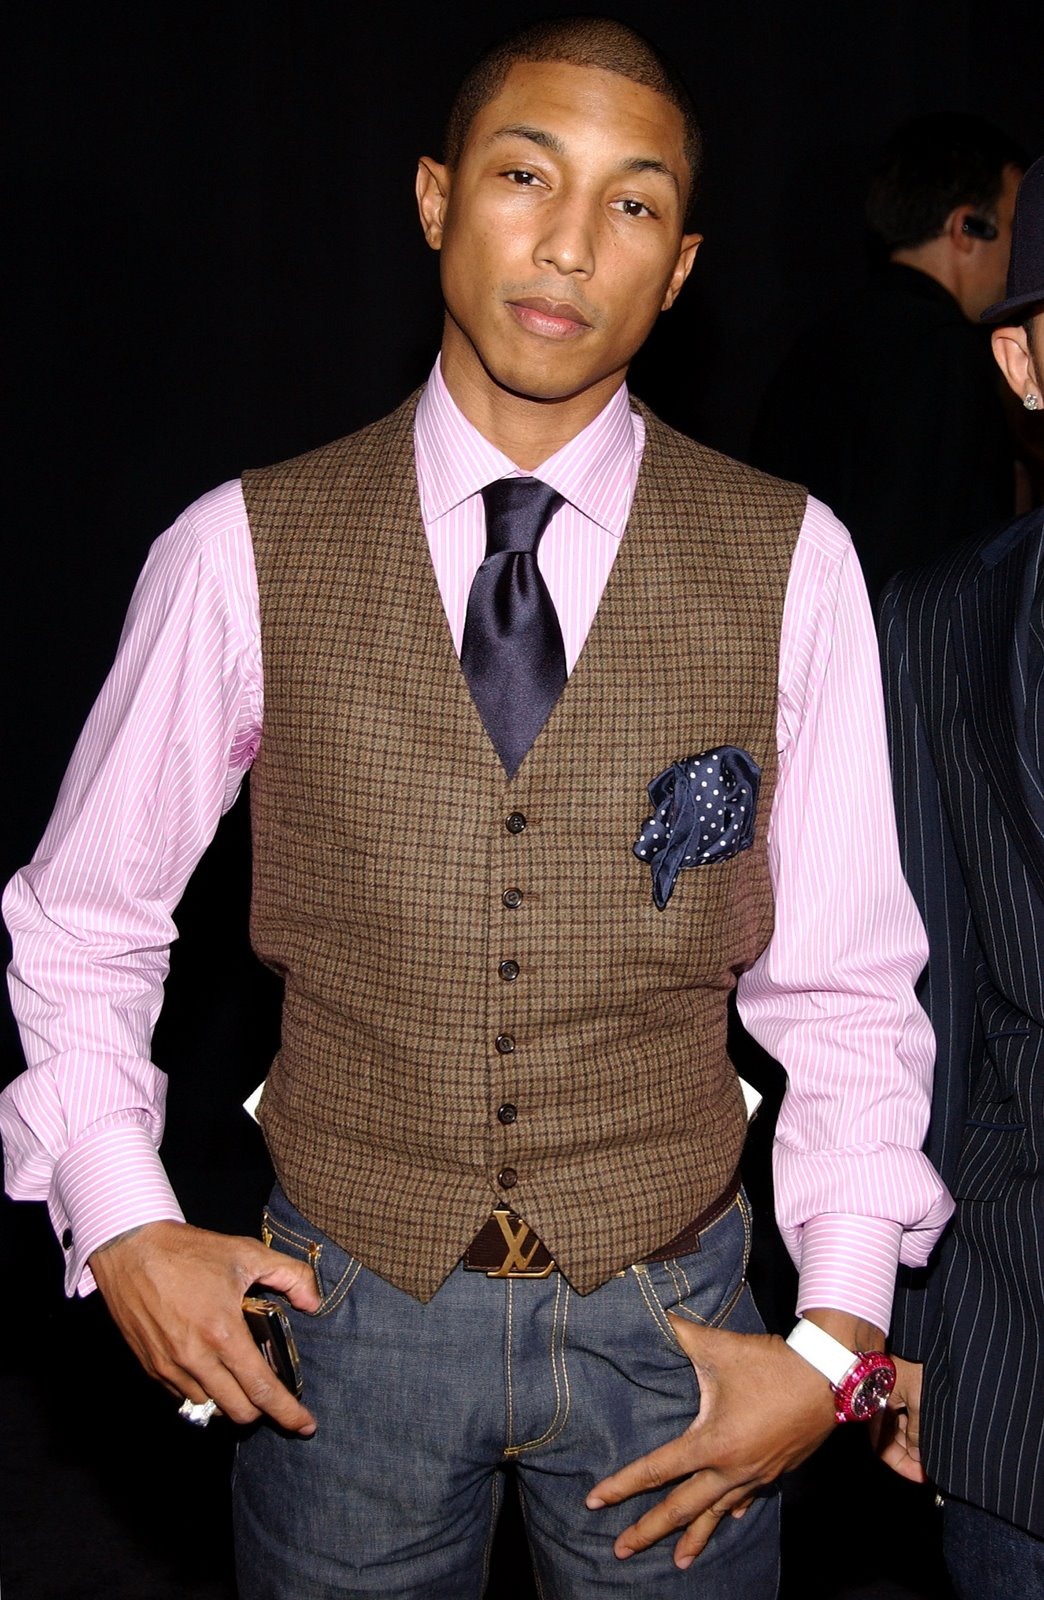 The 10 Best Dressed Men In Hip Hop